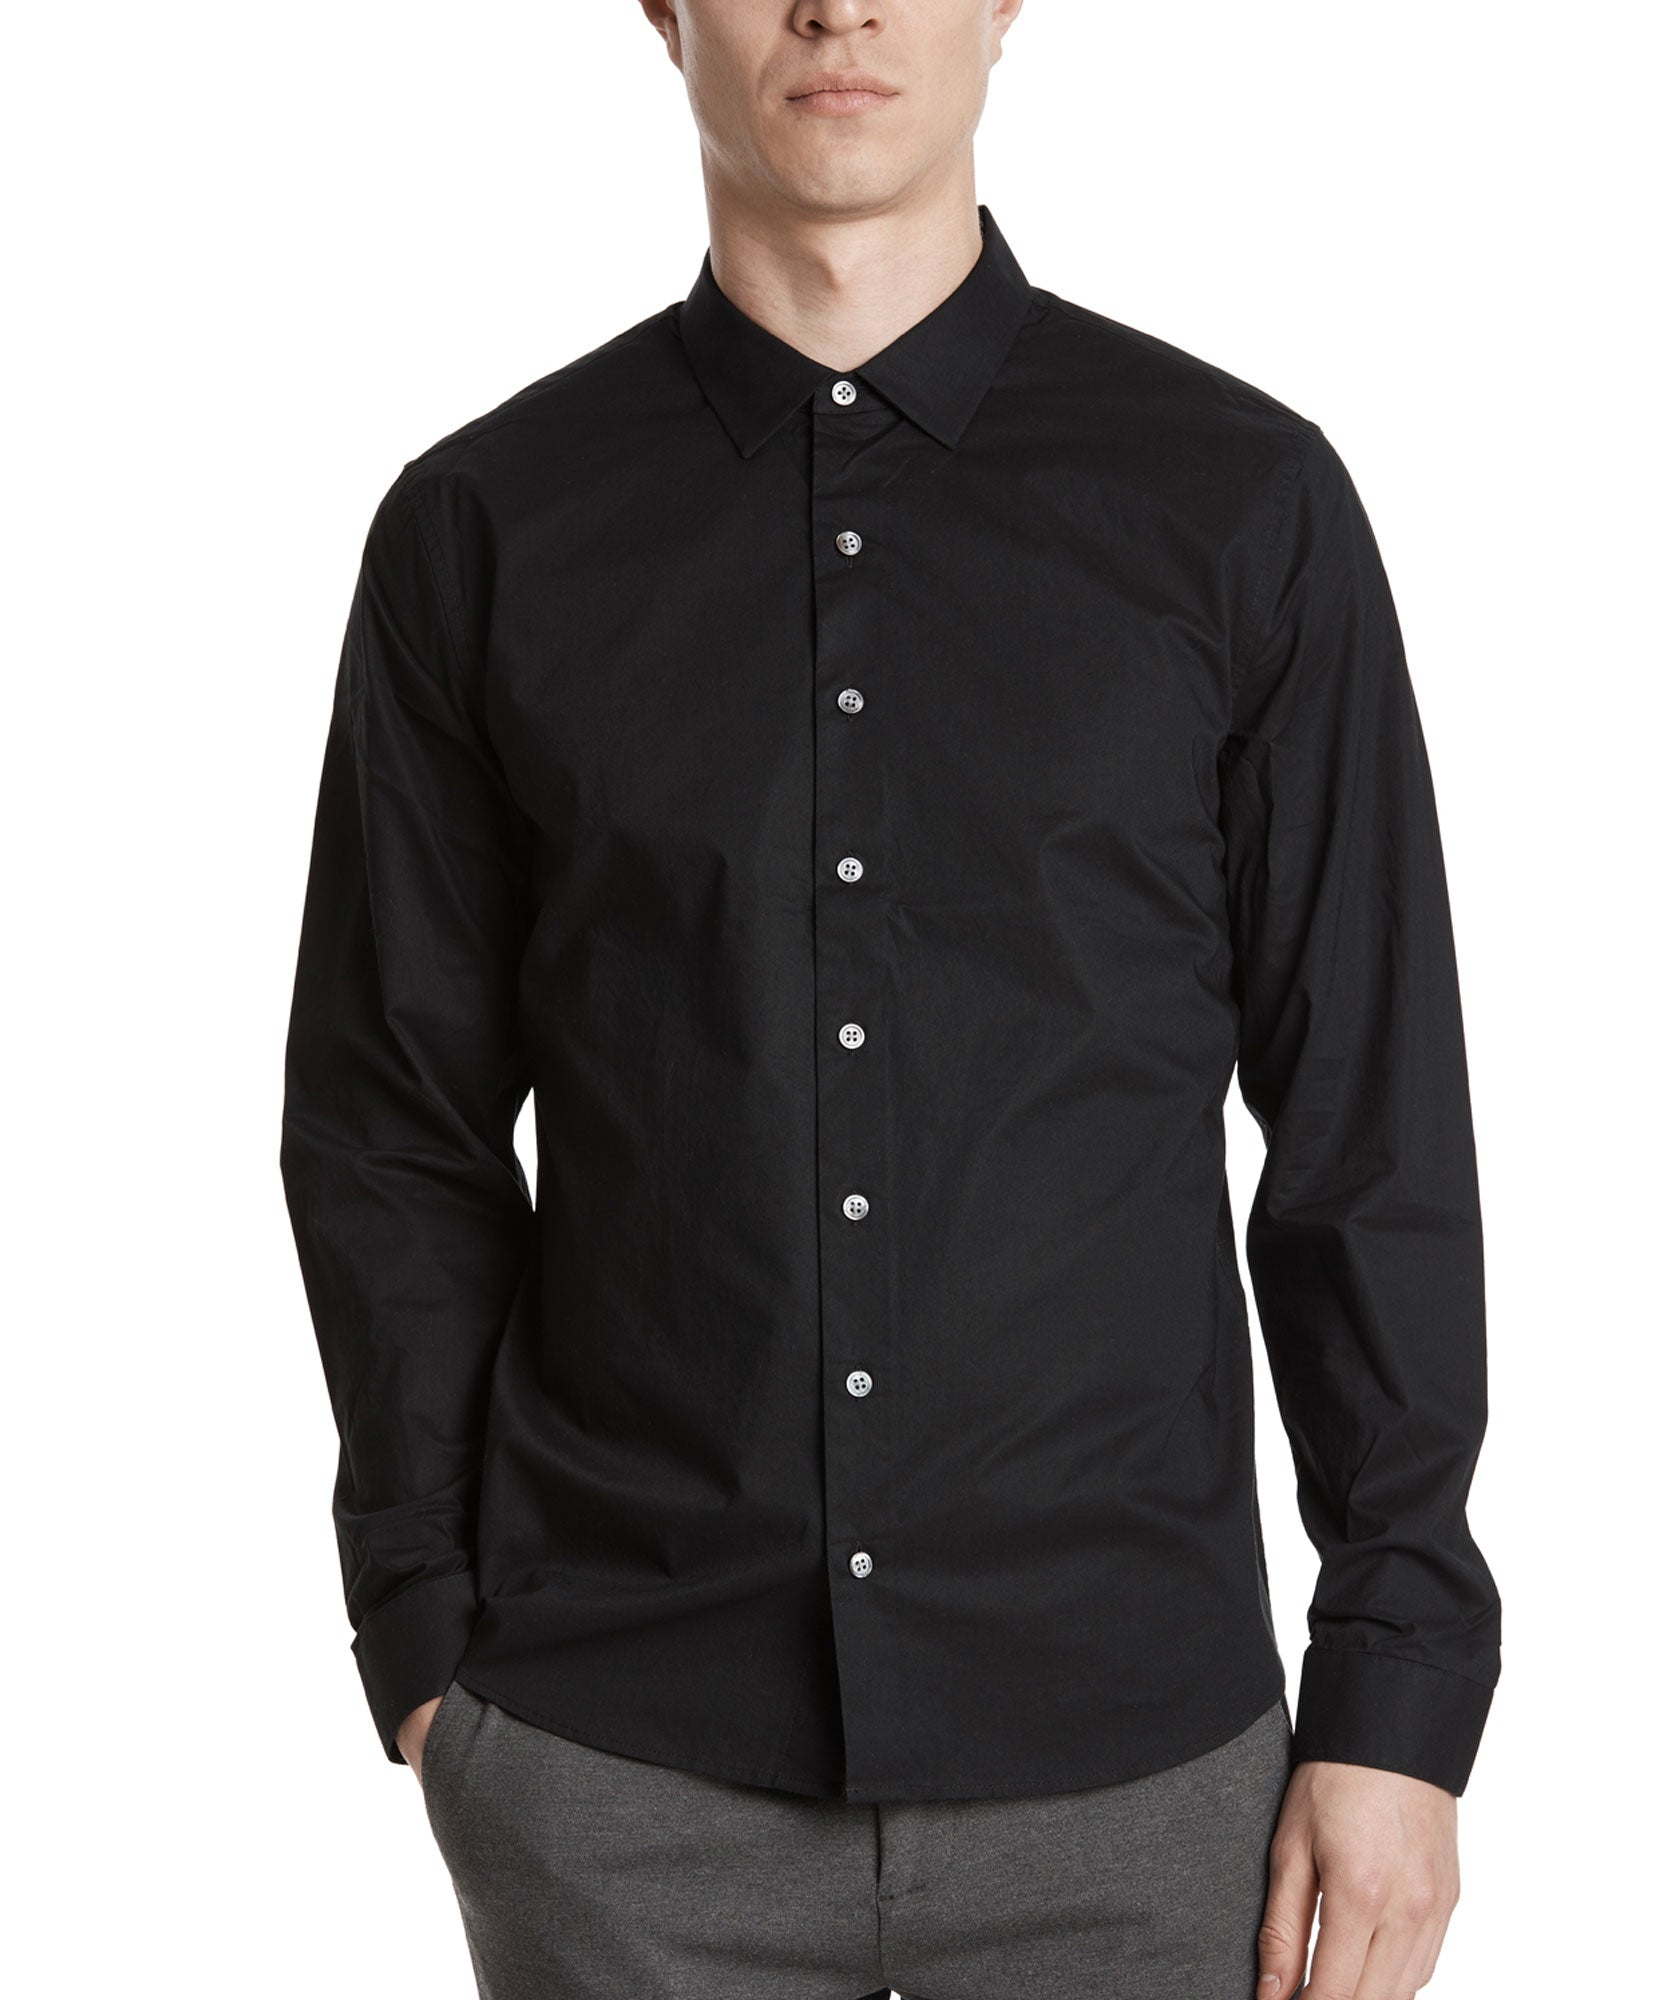 Black Cotton Poplin Classic Dress Shirt - Men's Cotton Long Sleeve Shirt by ATM Anthony Thomas Melillo